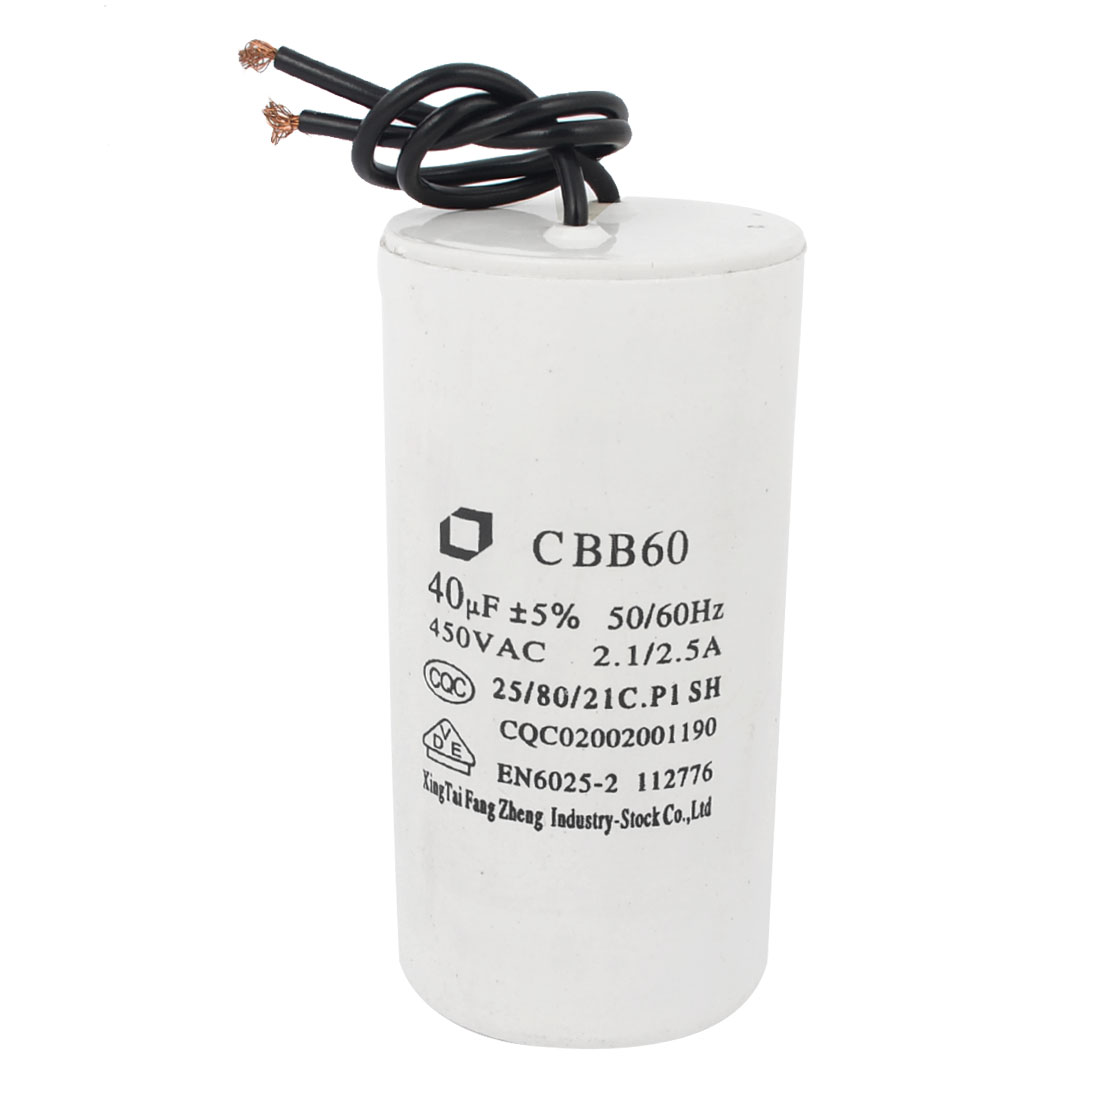 CBB60 Polypropylene Film Motor Run Capacitor 450VAC 50-60Hz 40UF